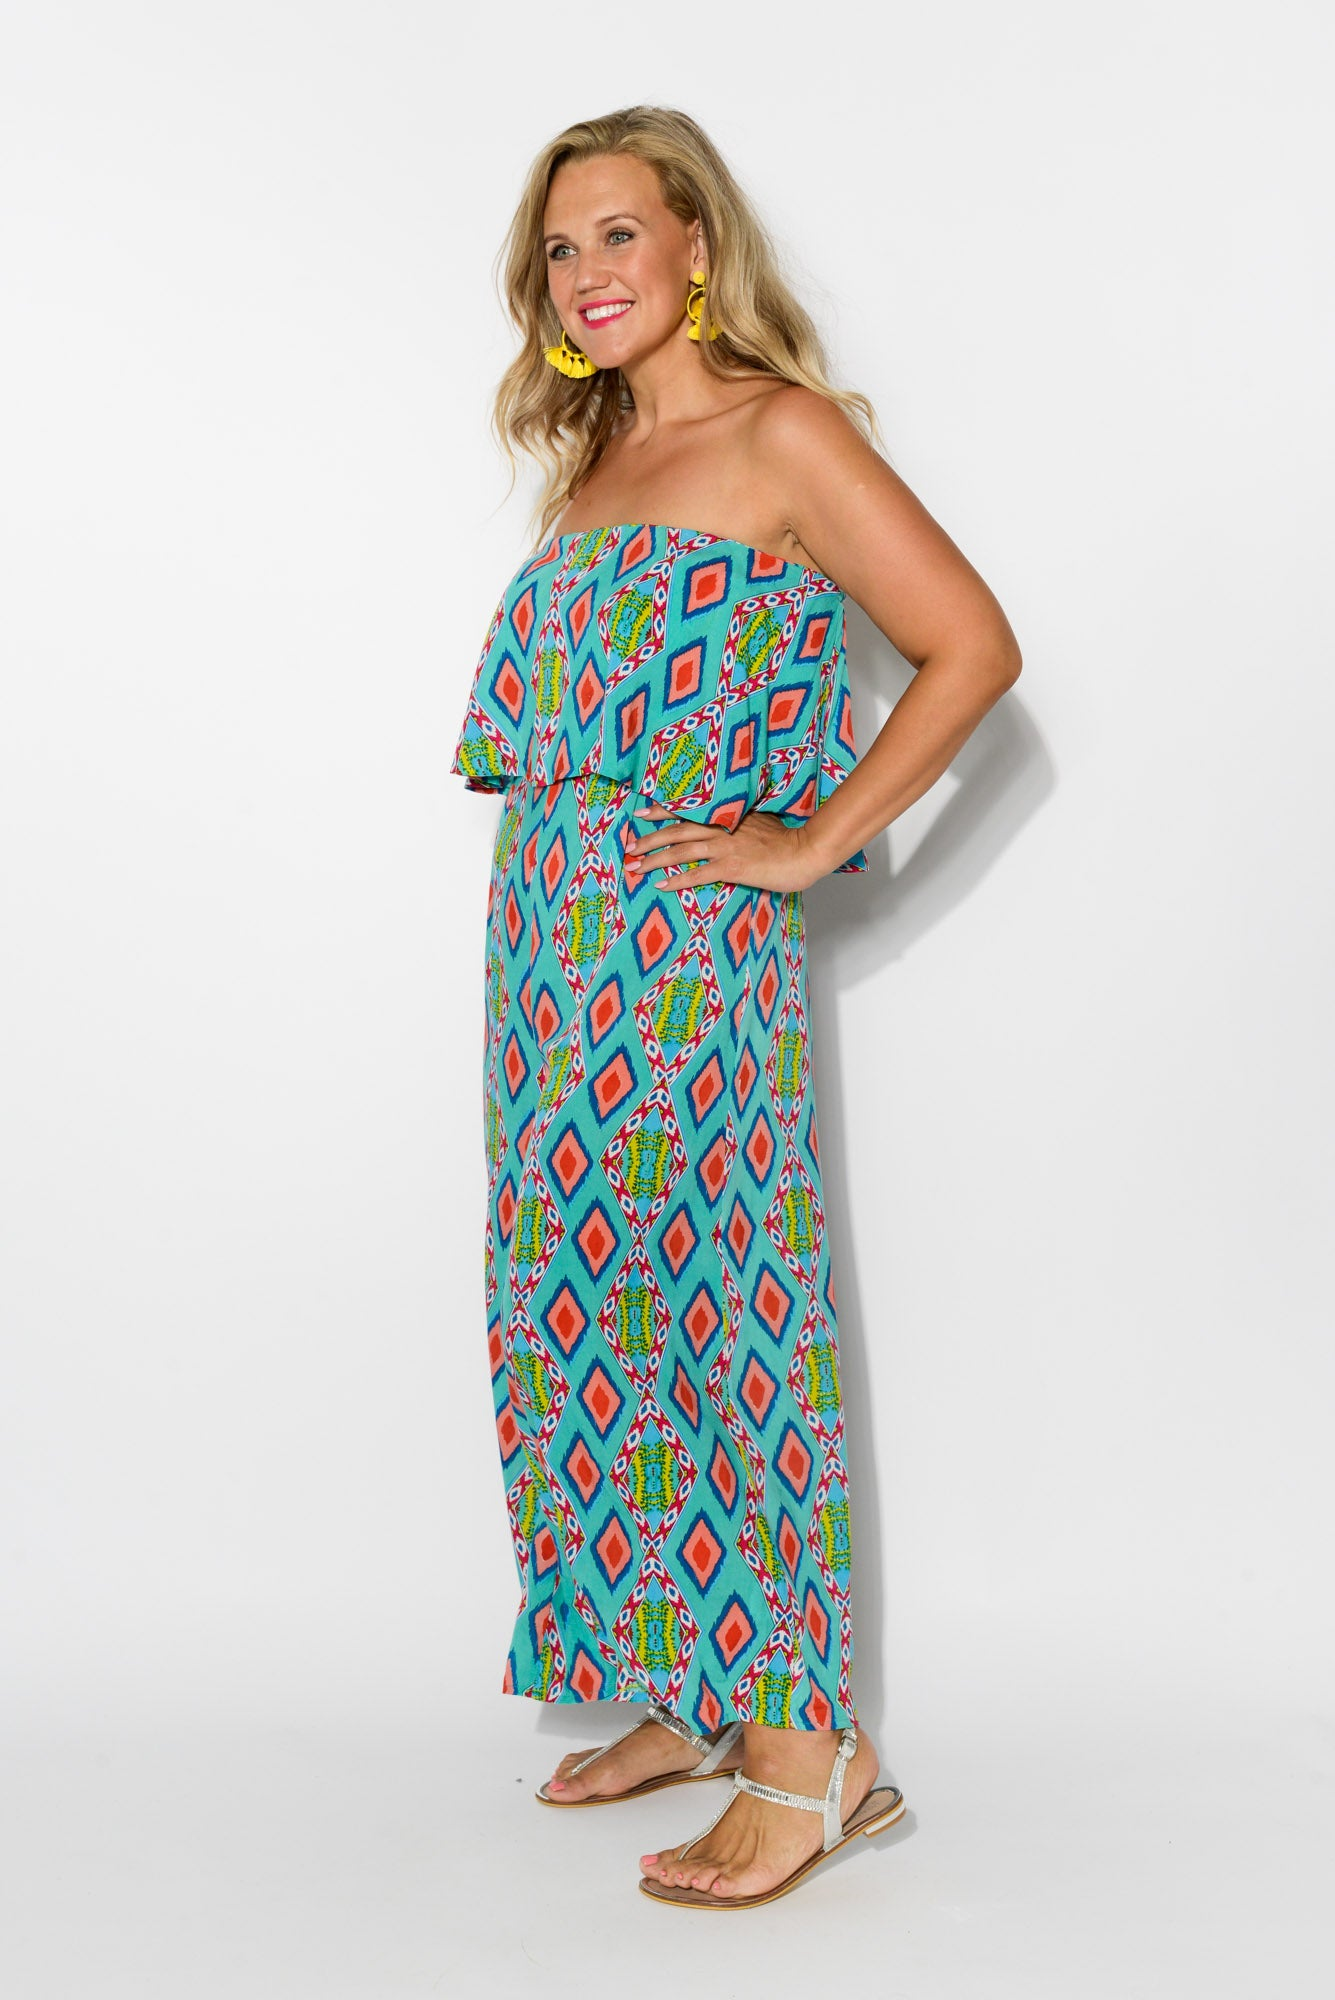 fc007135429 Lombardy Teal Strapless Jumpsuit - Blue Bungalow ...